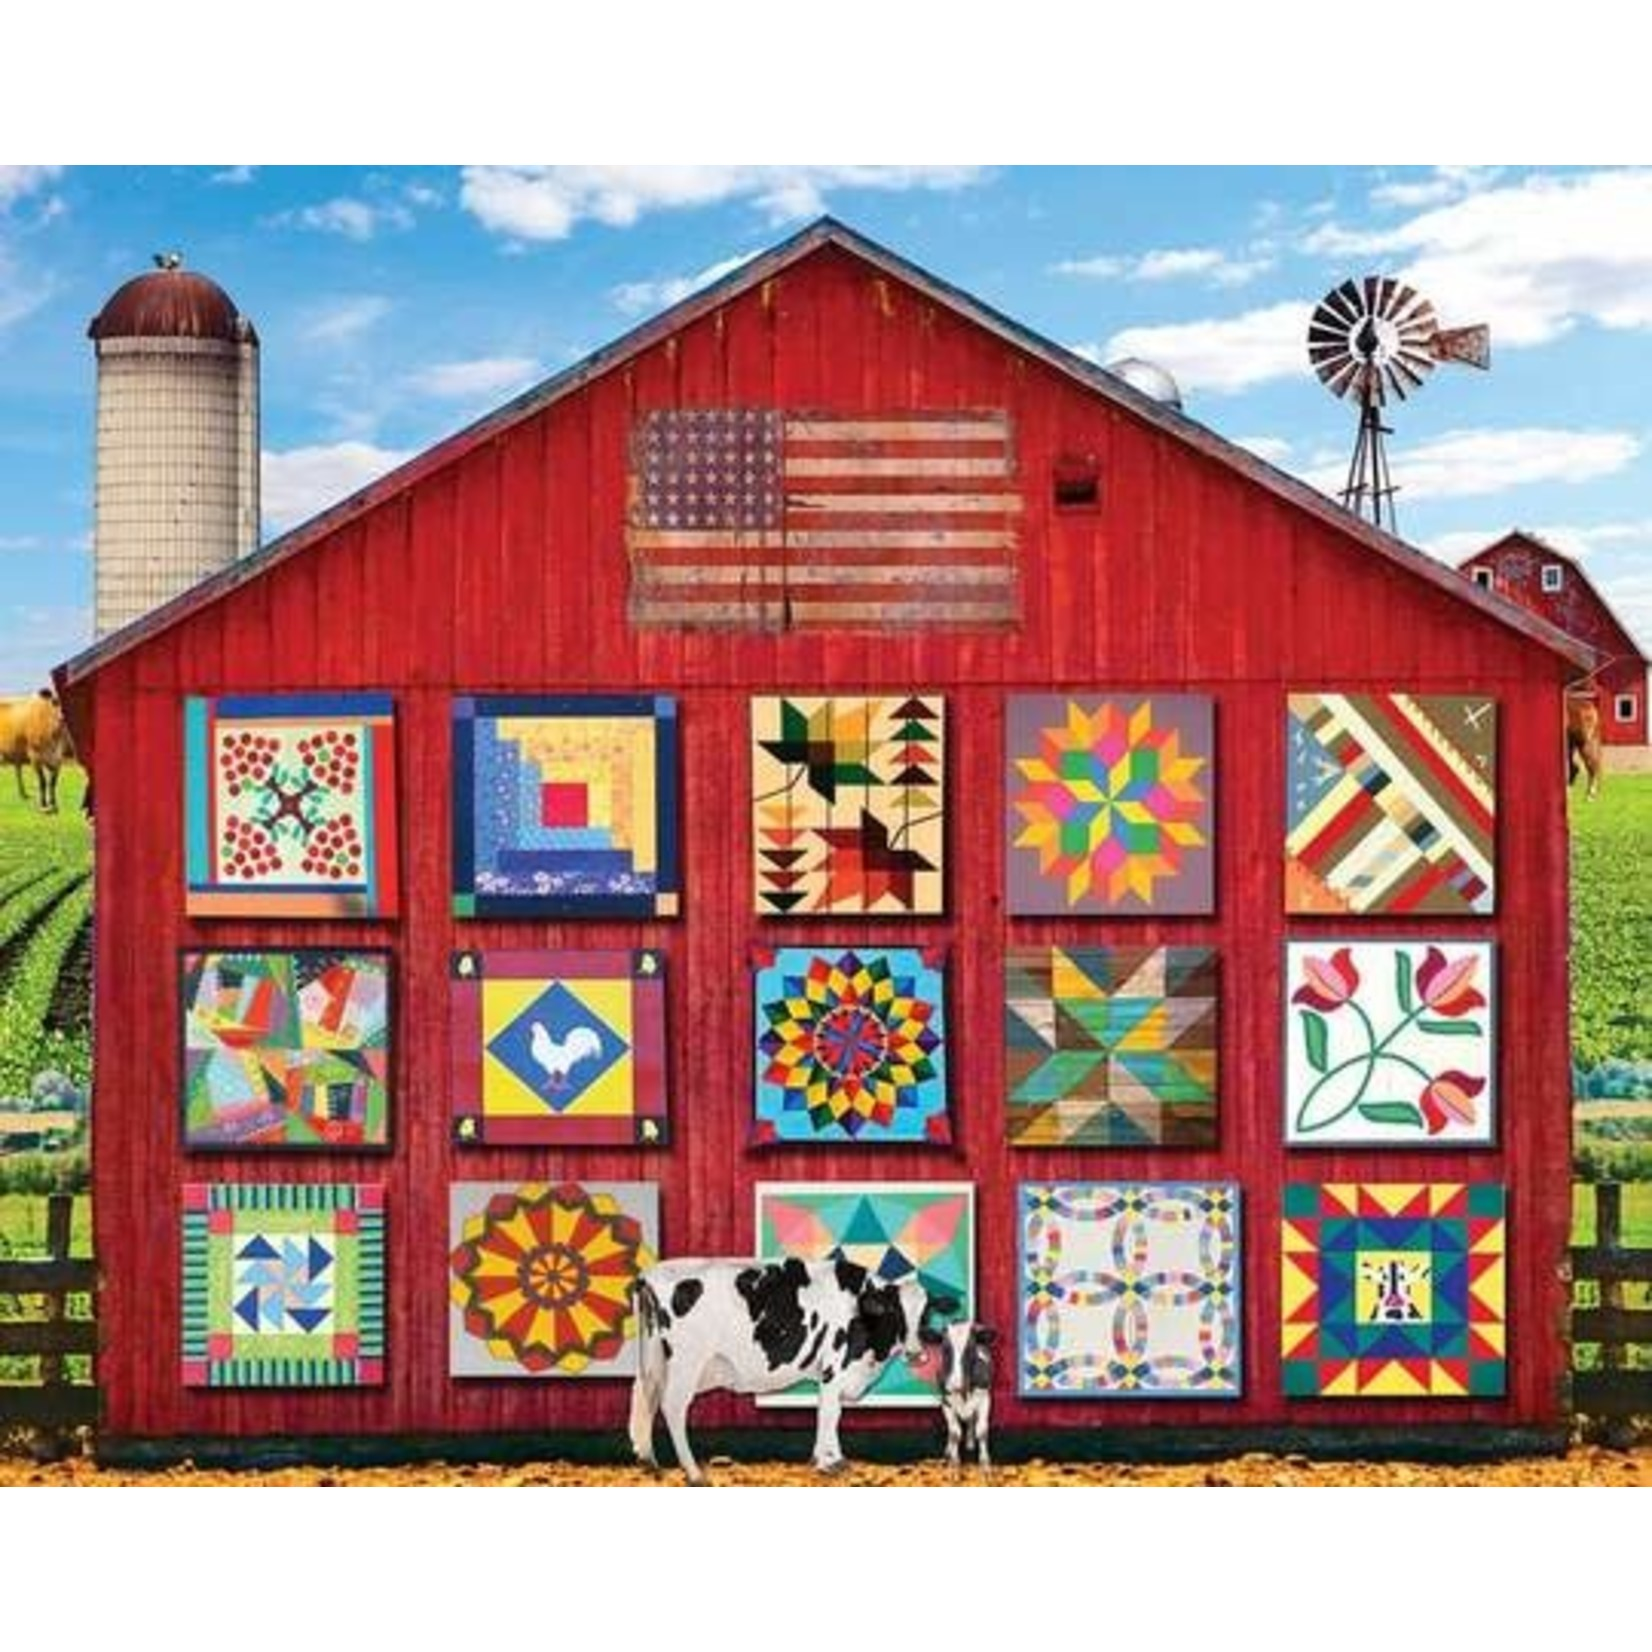 BARN QUILTS PUZZLE